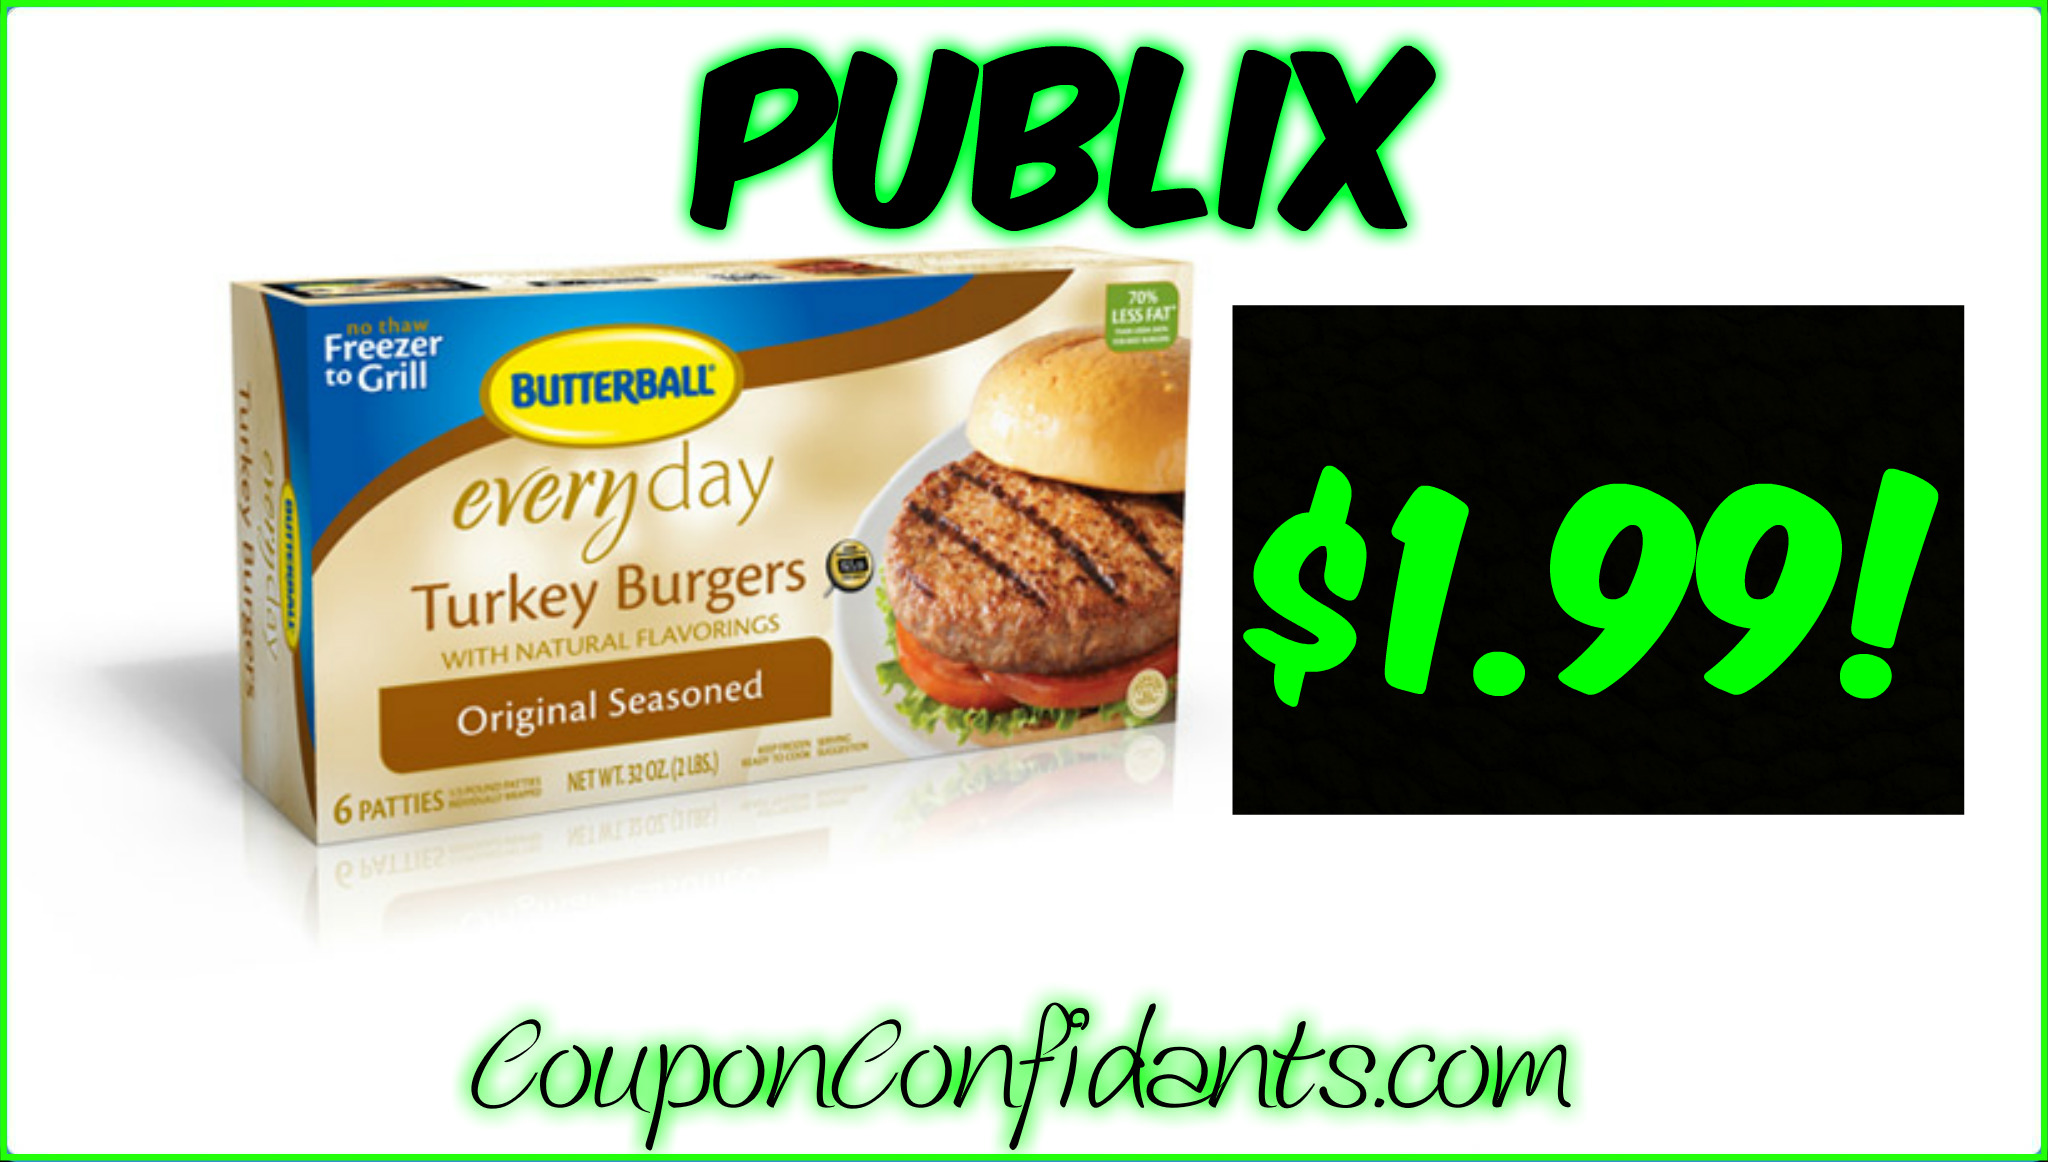 Butterball Frozen Burgers only $1.99 at Publix!